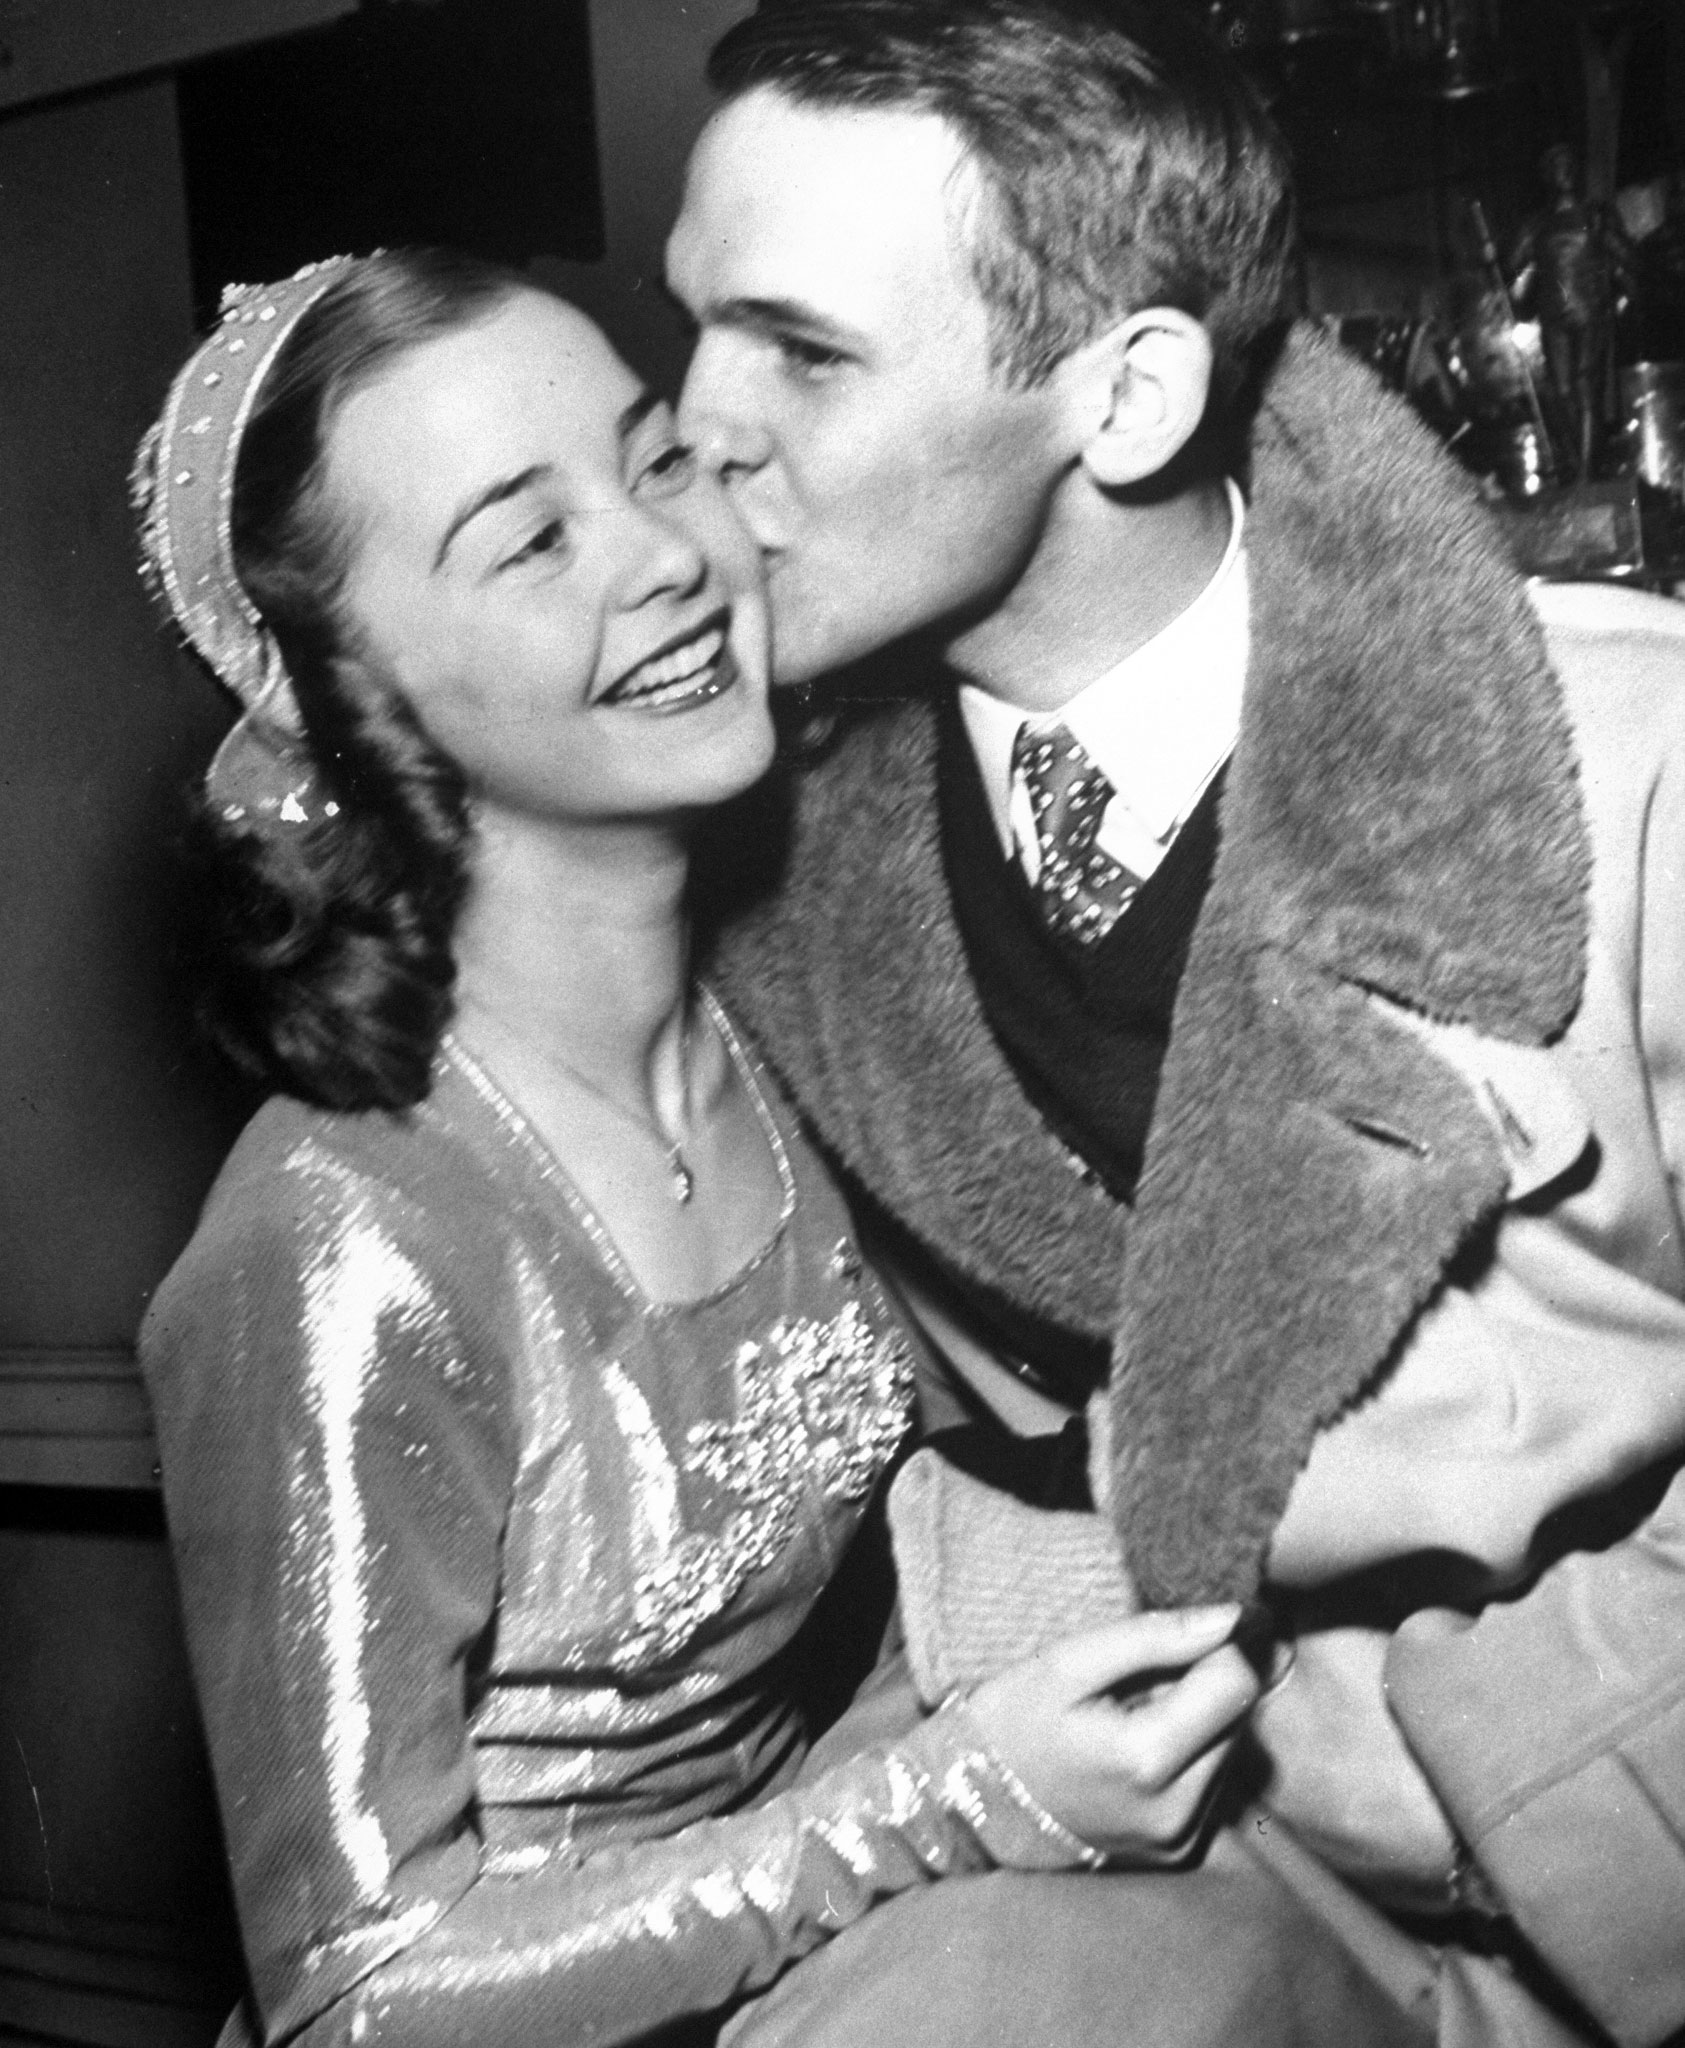 <b>Caption from LIFE.</b> Barbara gets kissed by Richard Button after her victory. Good-luck piece is still around her neck.